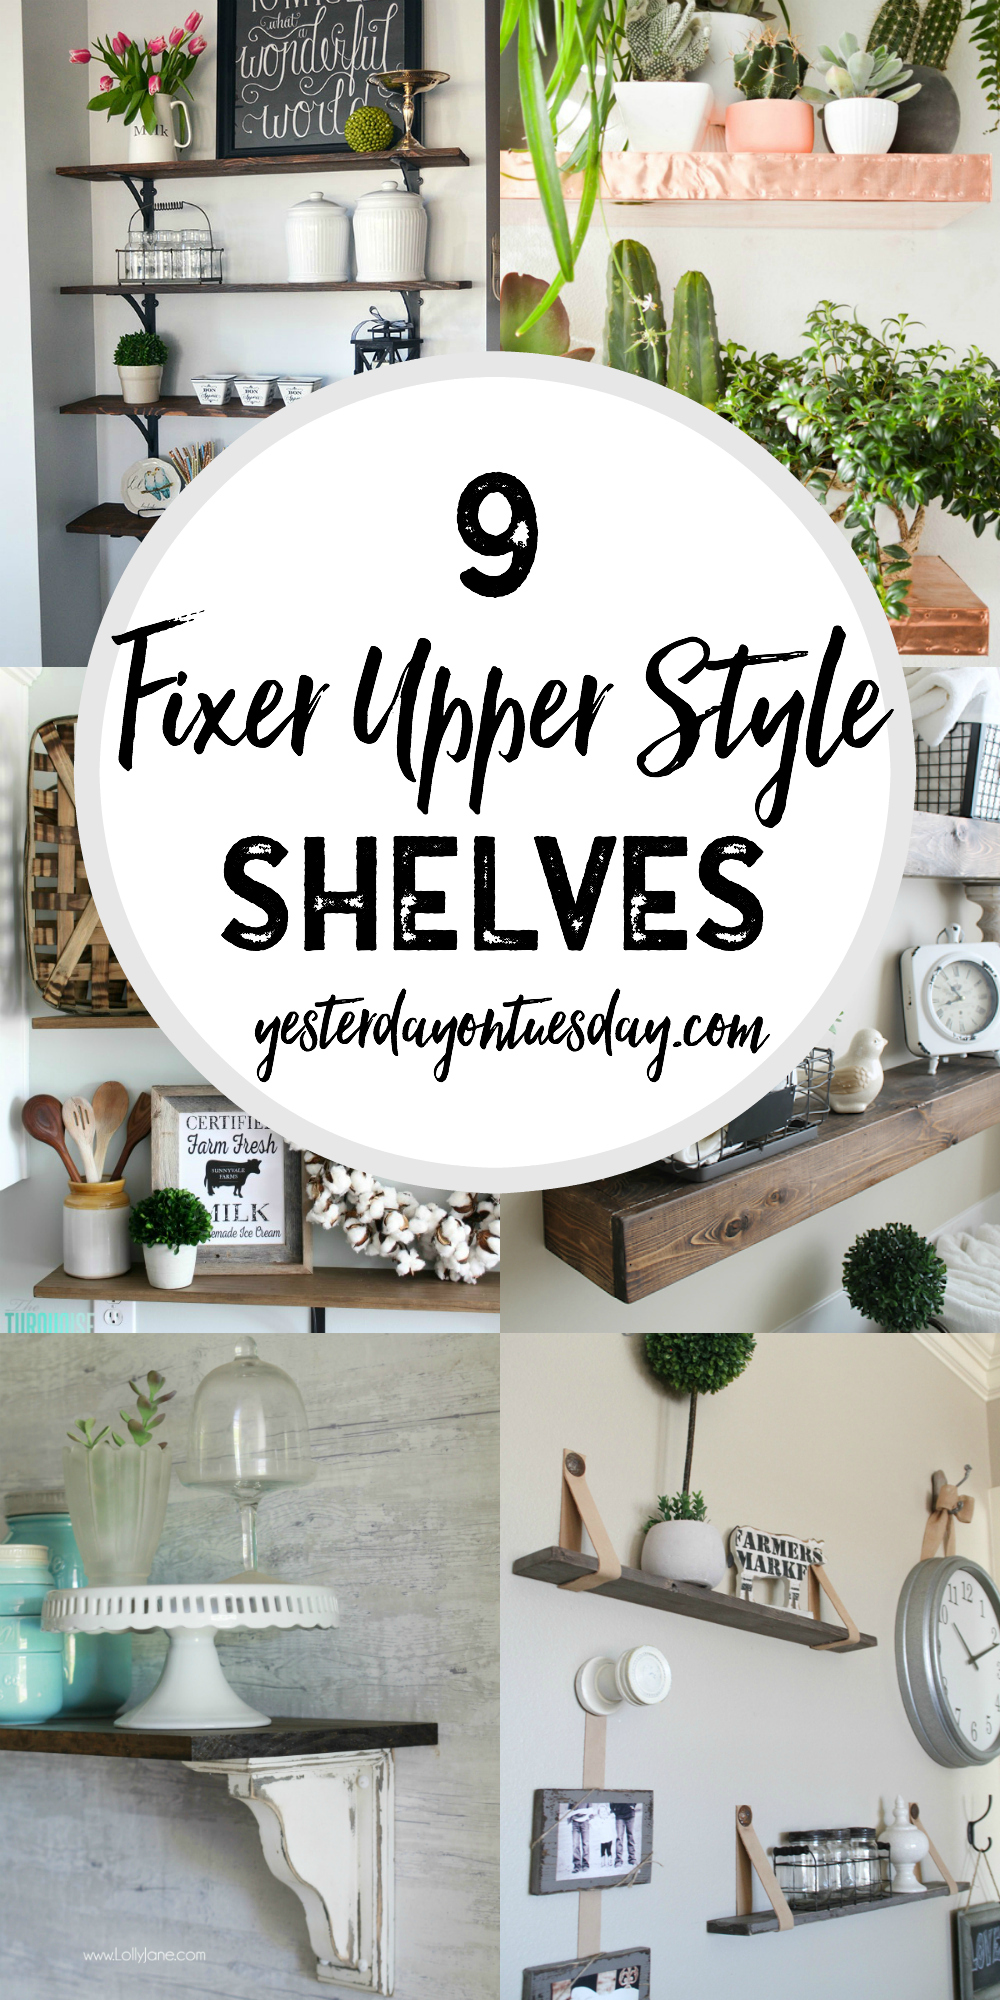 Magnificent 9 Fixer Upper Style Shelves Yesterday On Tuesday Interior Design Ideas Ghosoteloinfo